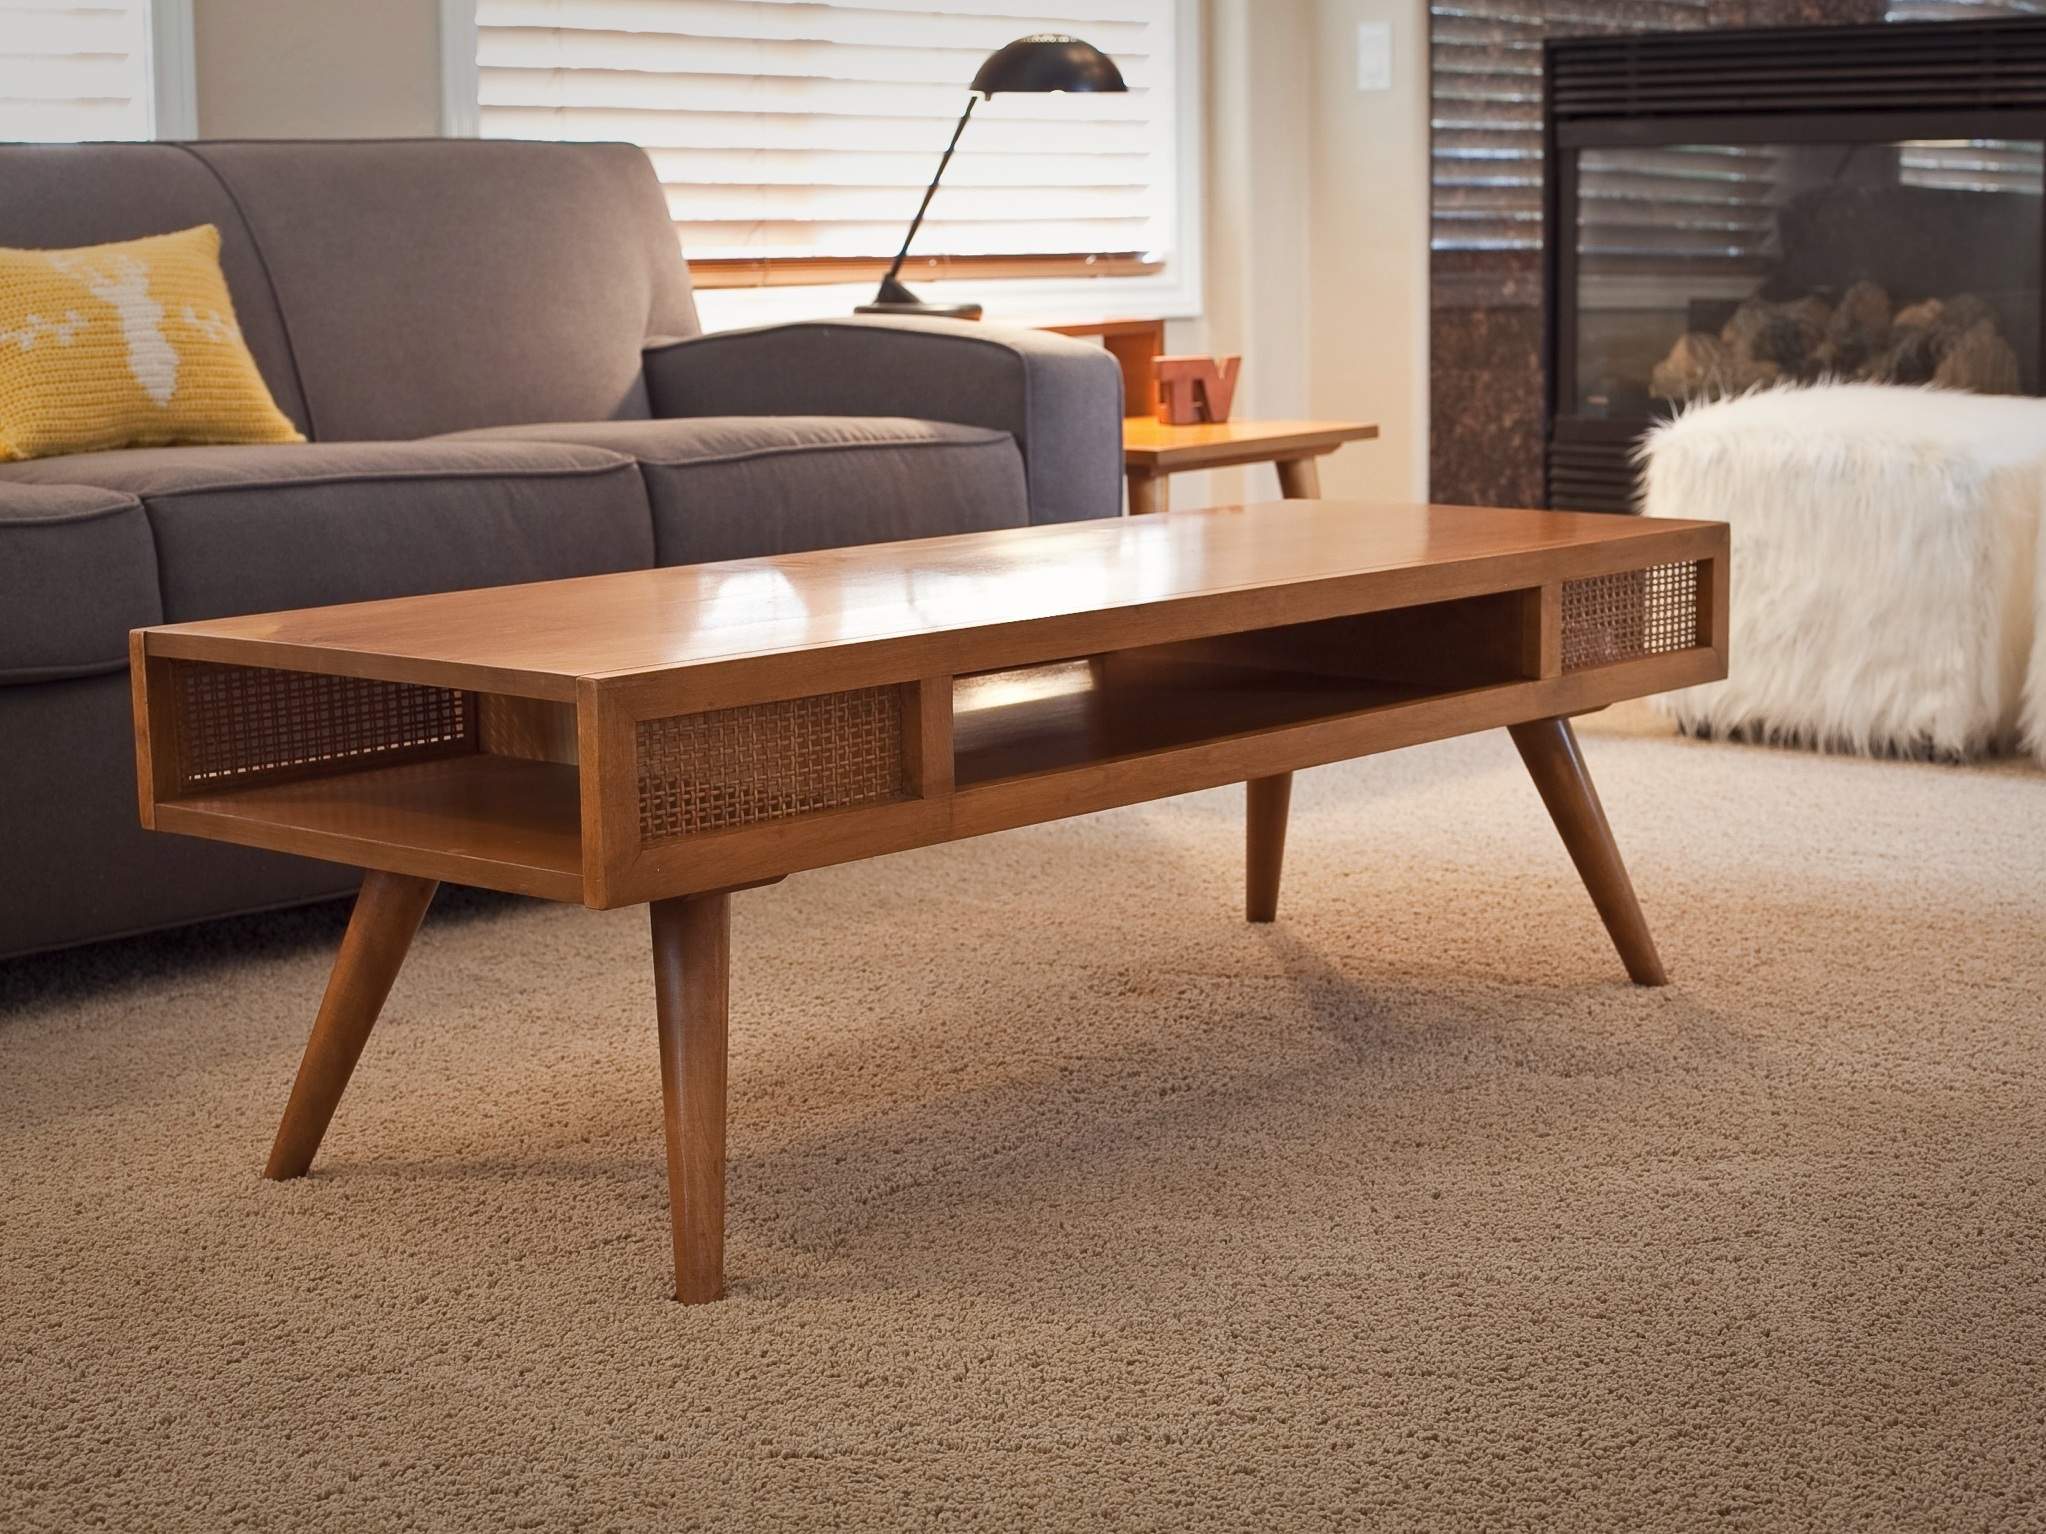 Original Retro Coffee Table